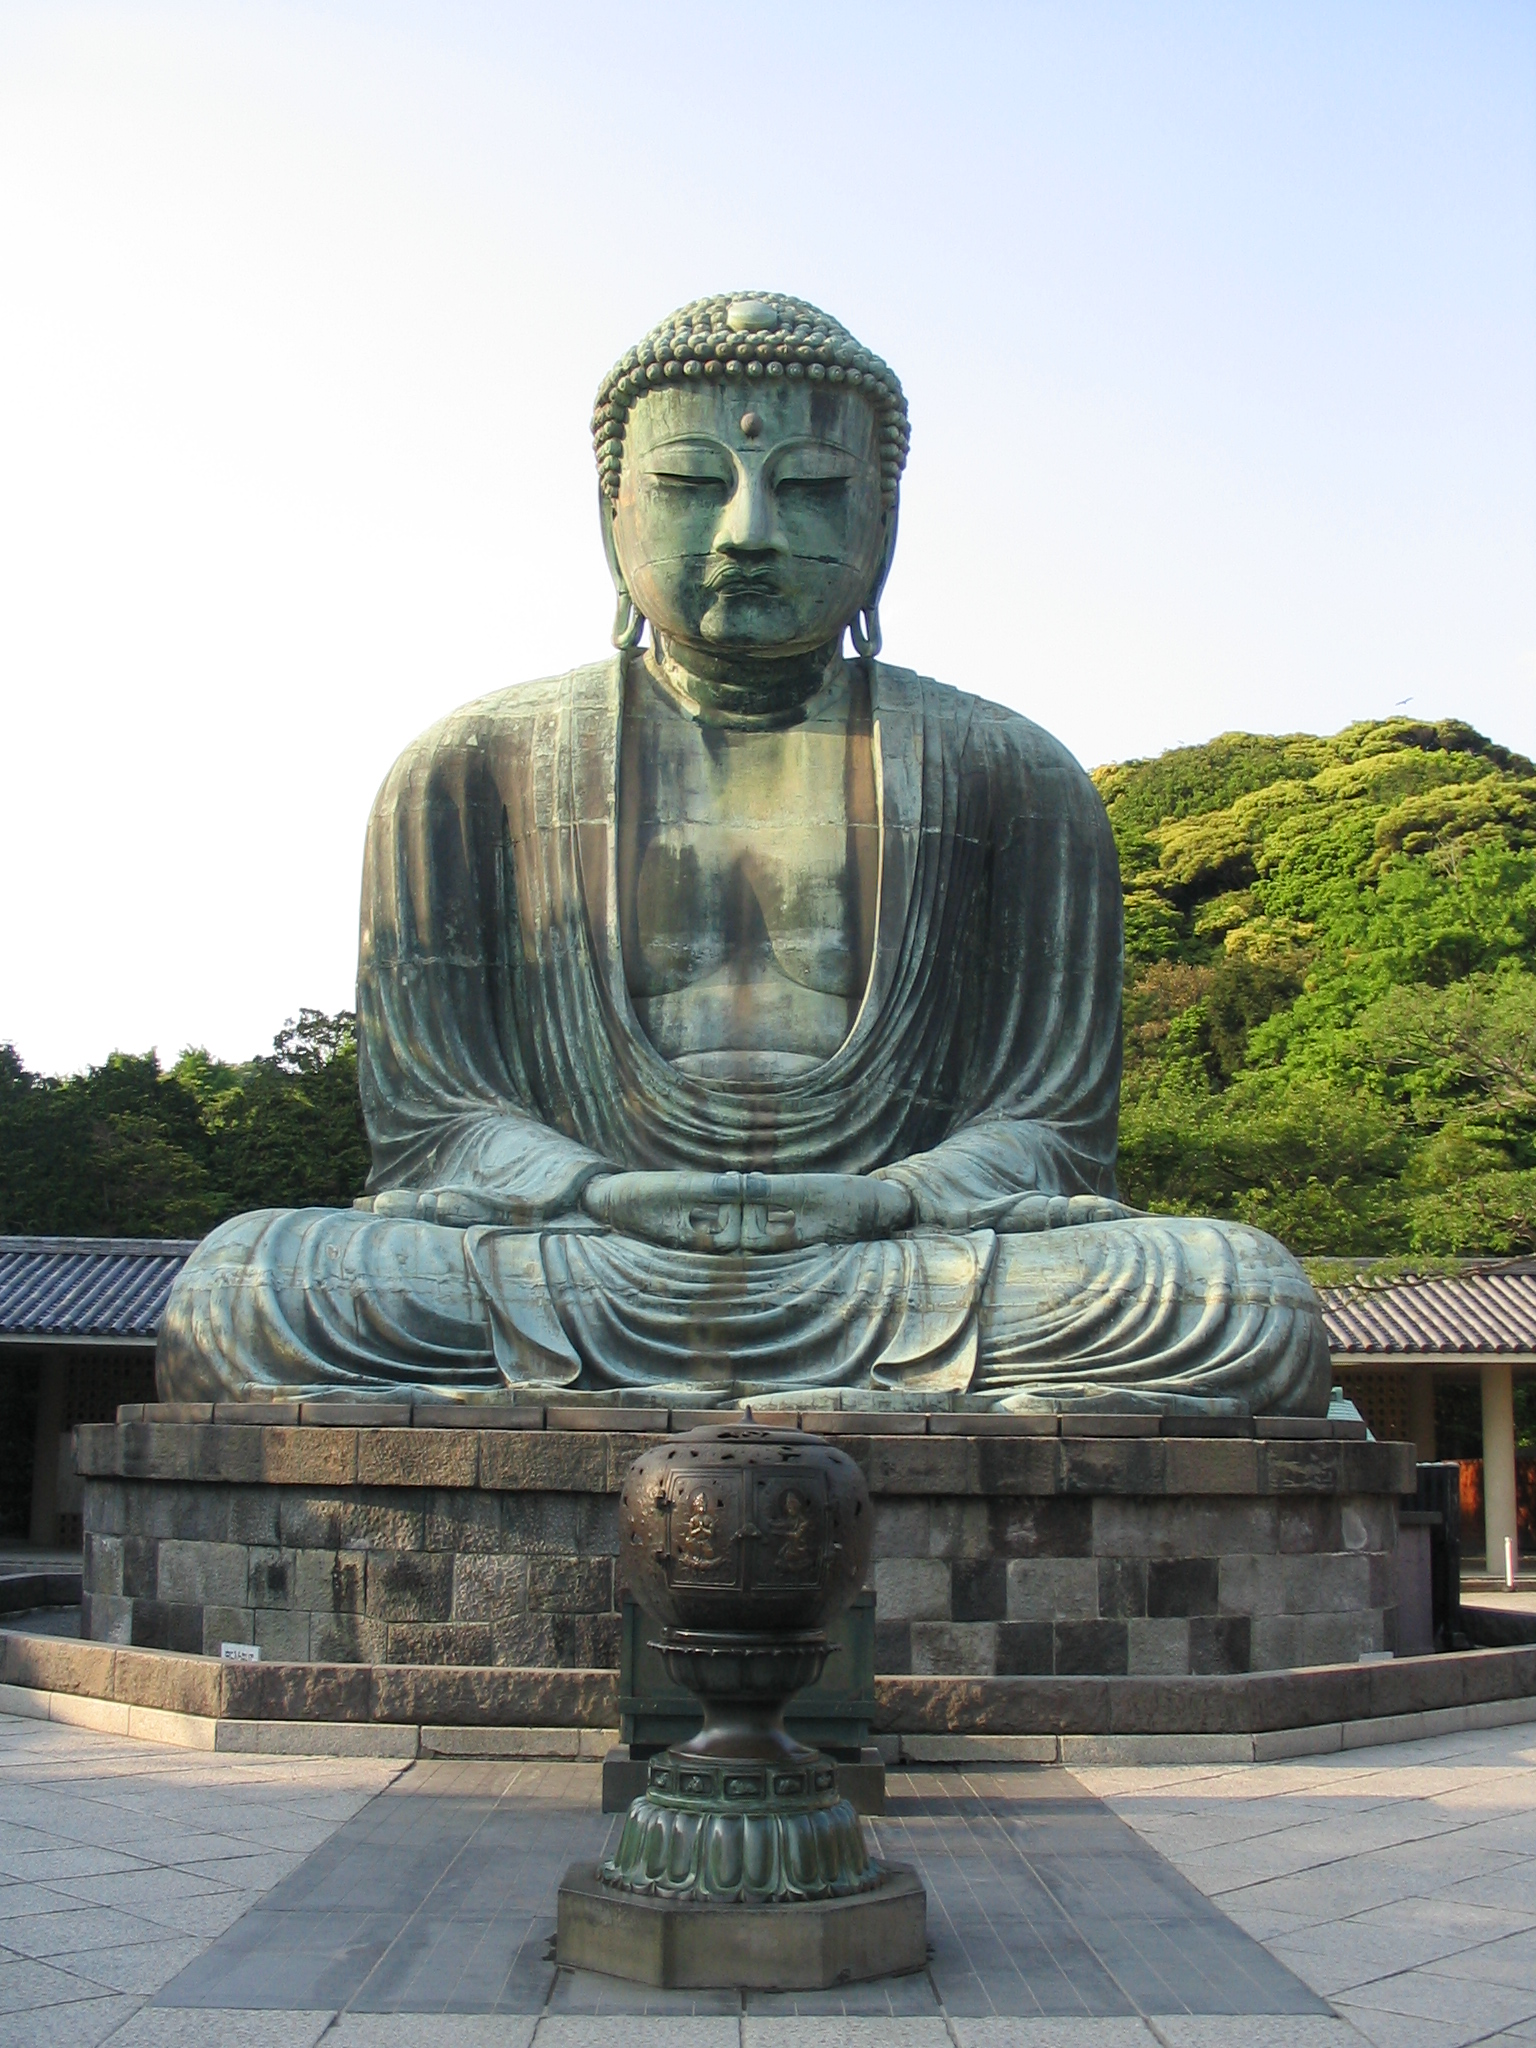 https://upload.wikimedia.org/wikipedia/commons/5/5d/Kamakura_Budda_Daibutsu_front_1885.jpg